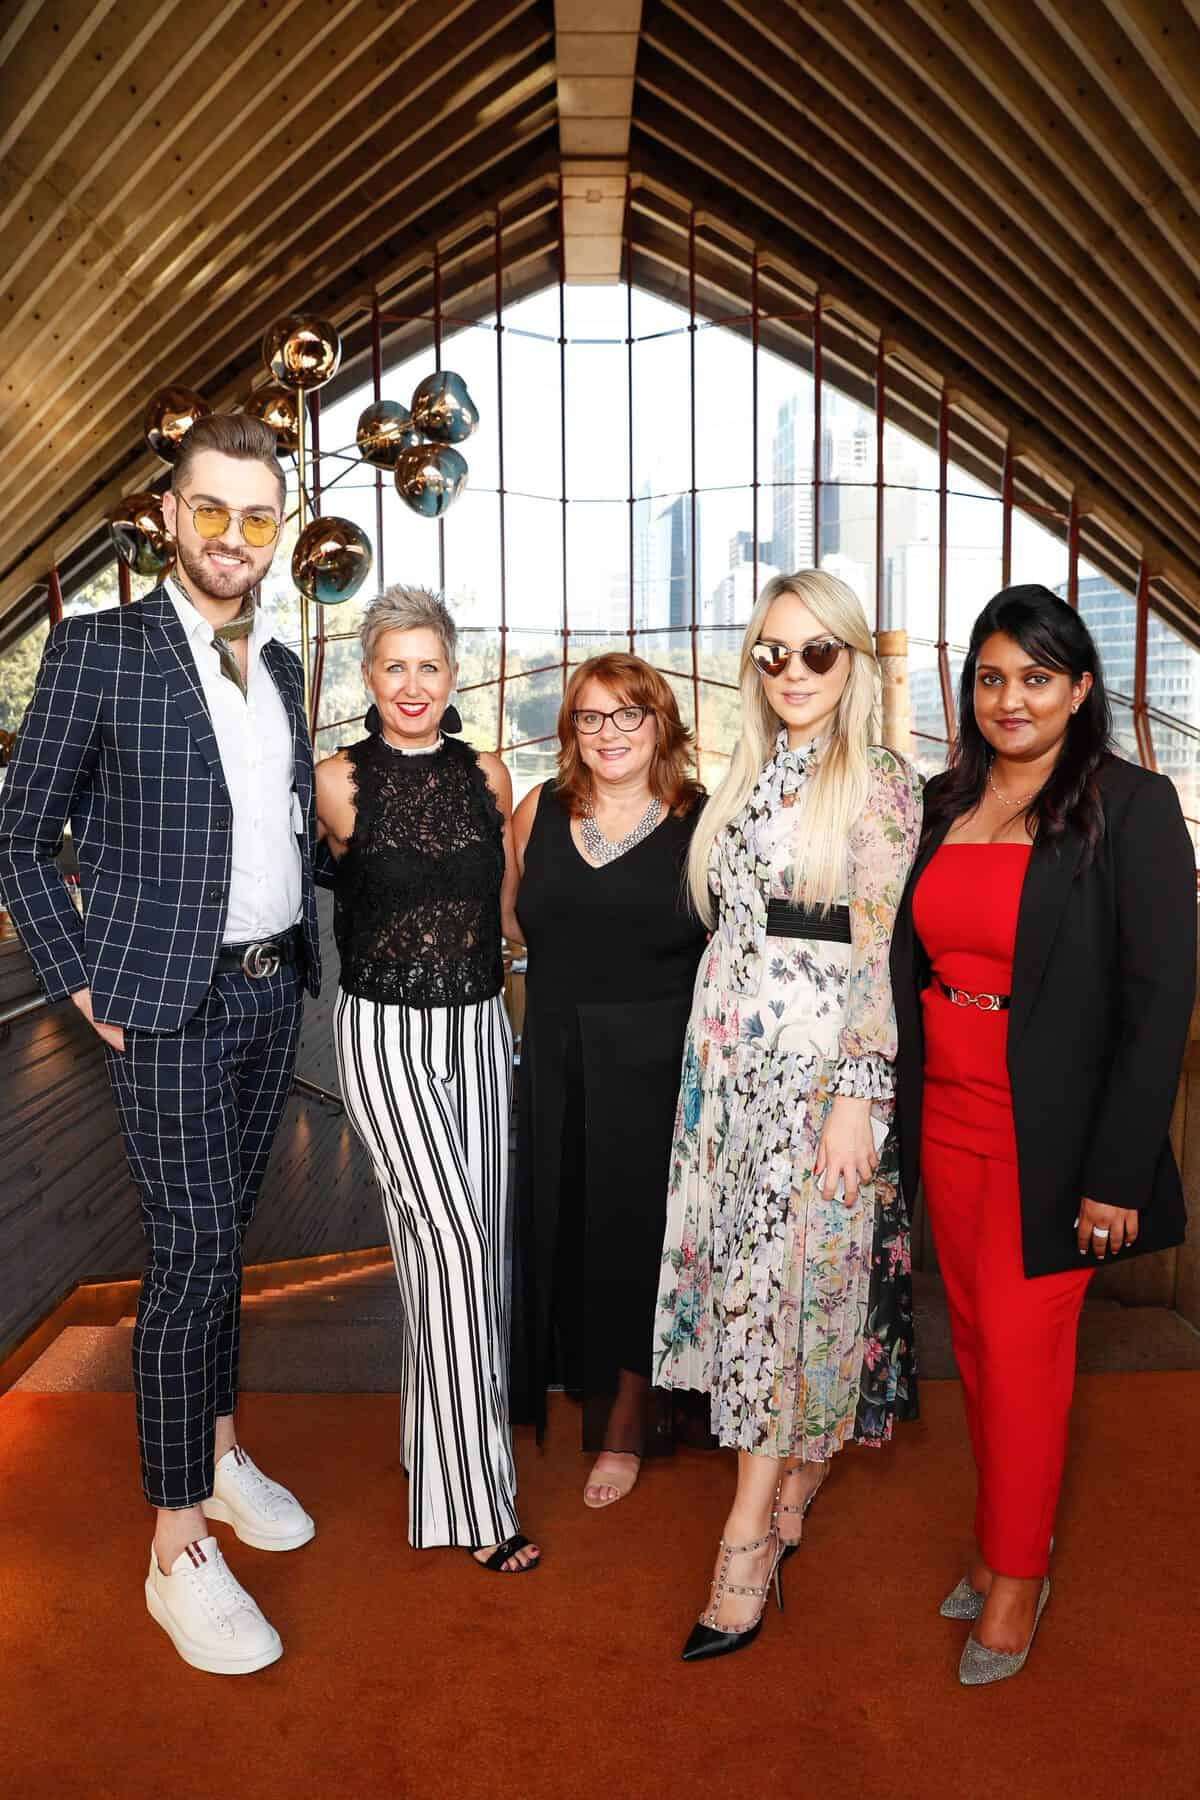 Bryce Alexander Mcintosh and Sarah Starvrow, Jude Kingston, Melissa Shea and Sneha Andani attend the Fashion Mingle Australia VIP Luncheon at Bennelong Restaurant Sydney Opera House on May 14, 2019 in Sydney, Australia. (Photo by Hanna Lassen/Getty Images for Fashion Mingle)